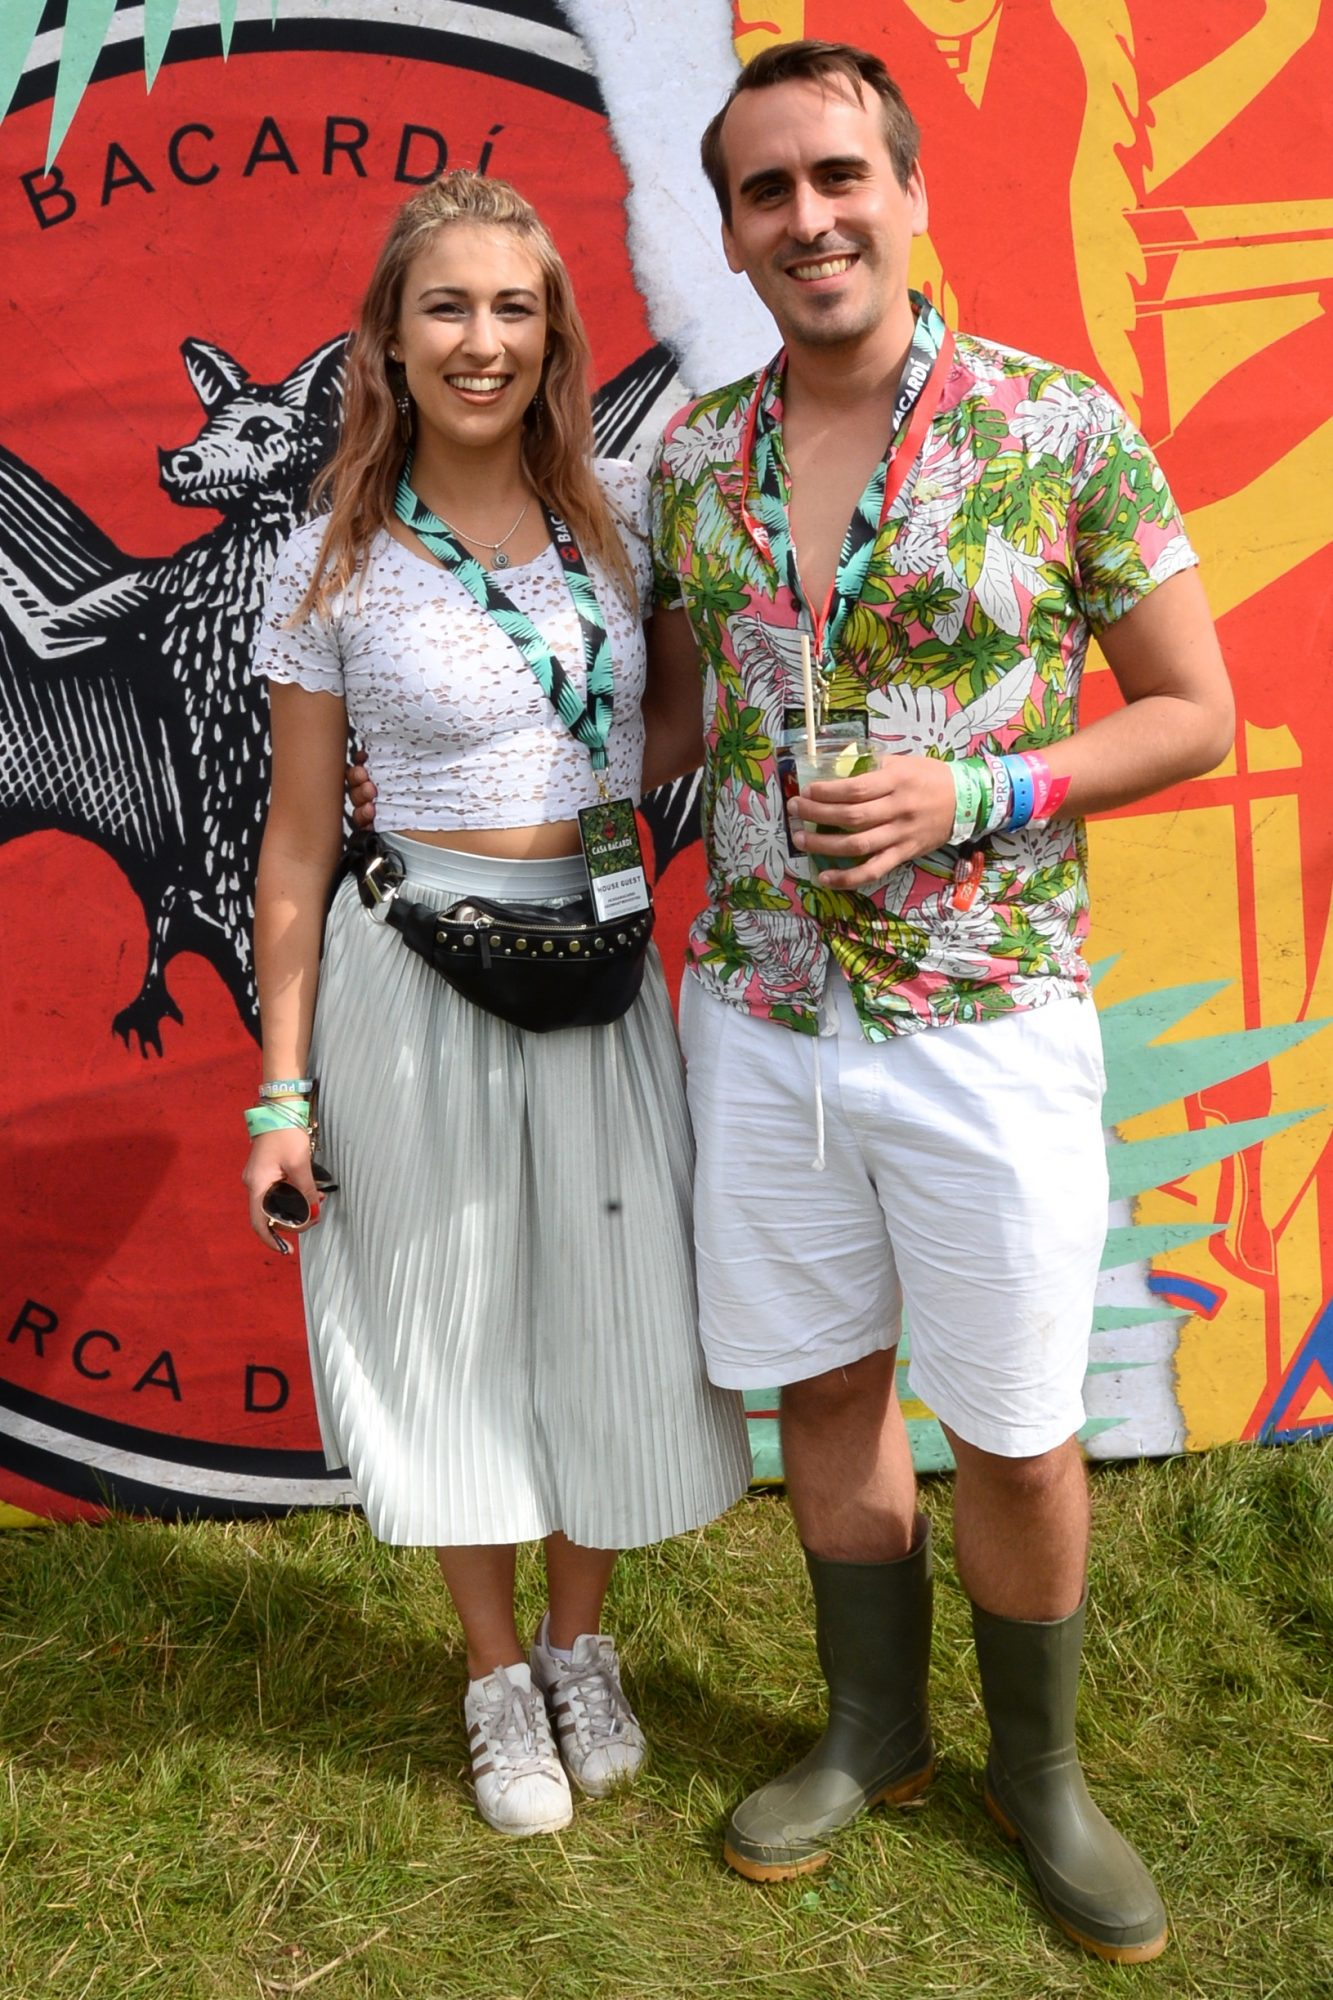 31st August 2019.  Ciara Maher and Tim Schroder pictured at Casa Bacardi on day 2 of Electric Picnic. Photo: Justin Farrelly.